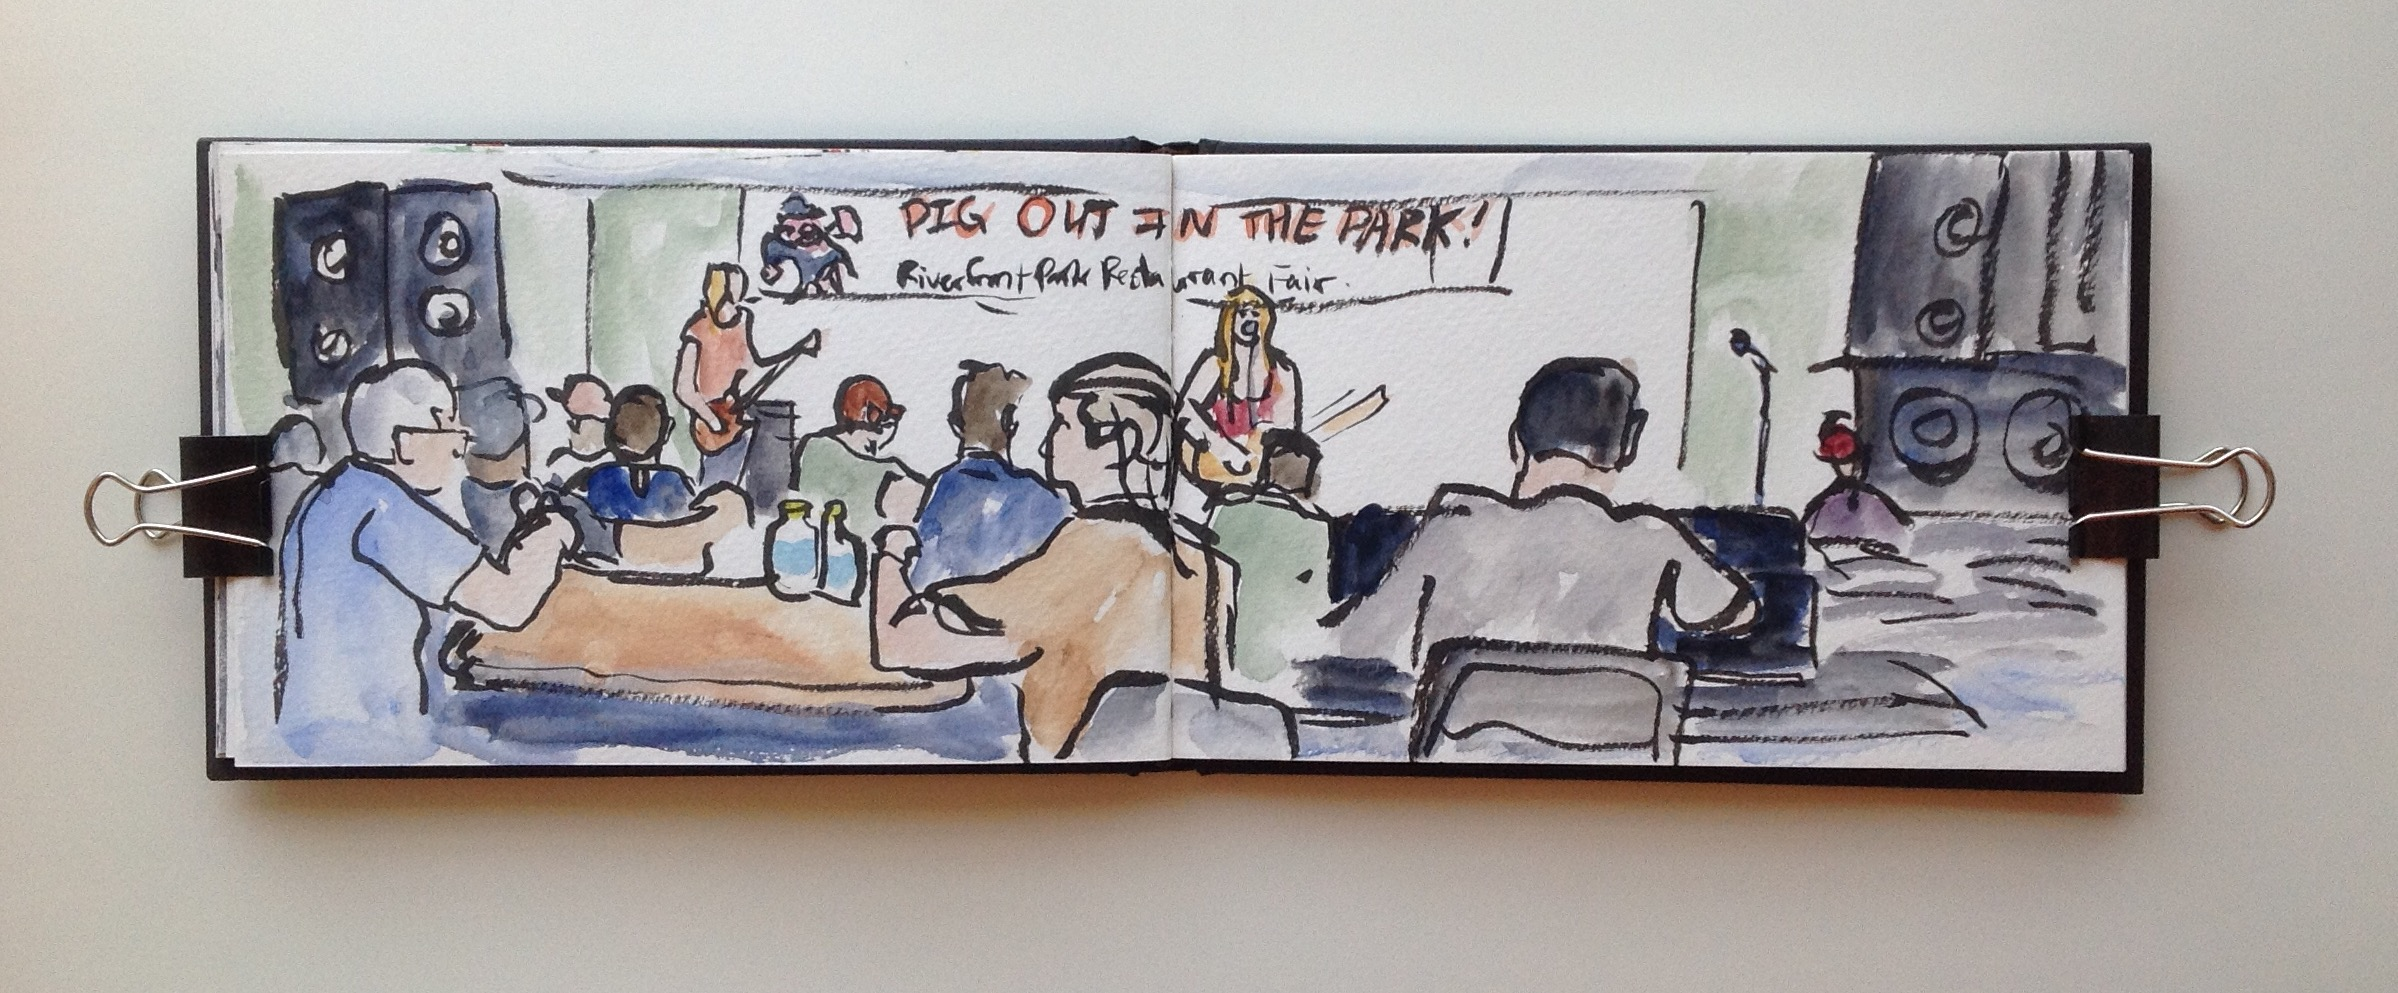 Pig Out isn't just about food, there are plenty of concerts as well! I had a great time sketching the lunch time crowd while enjoying fabulous live music.